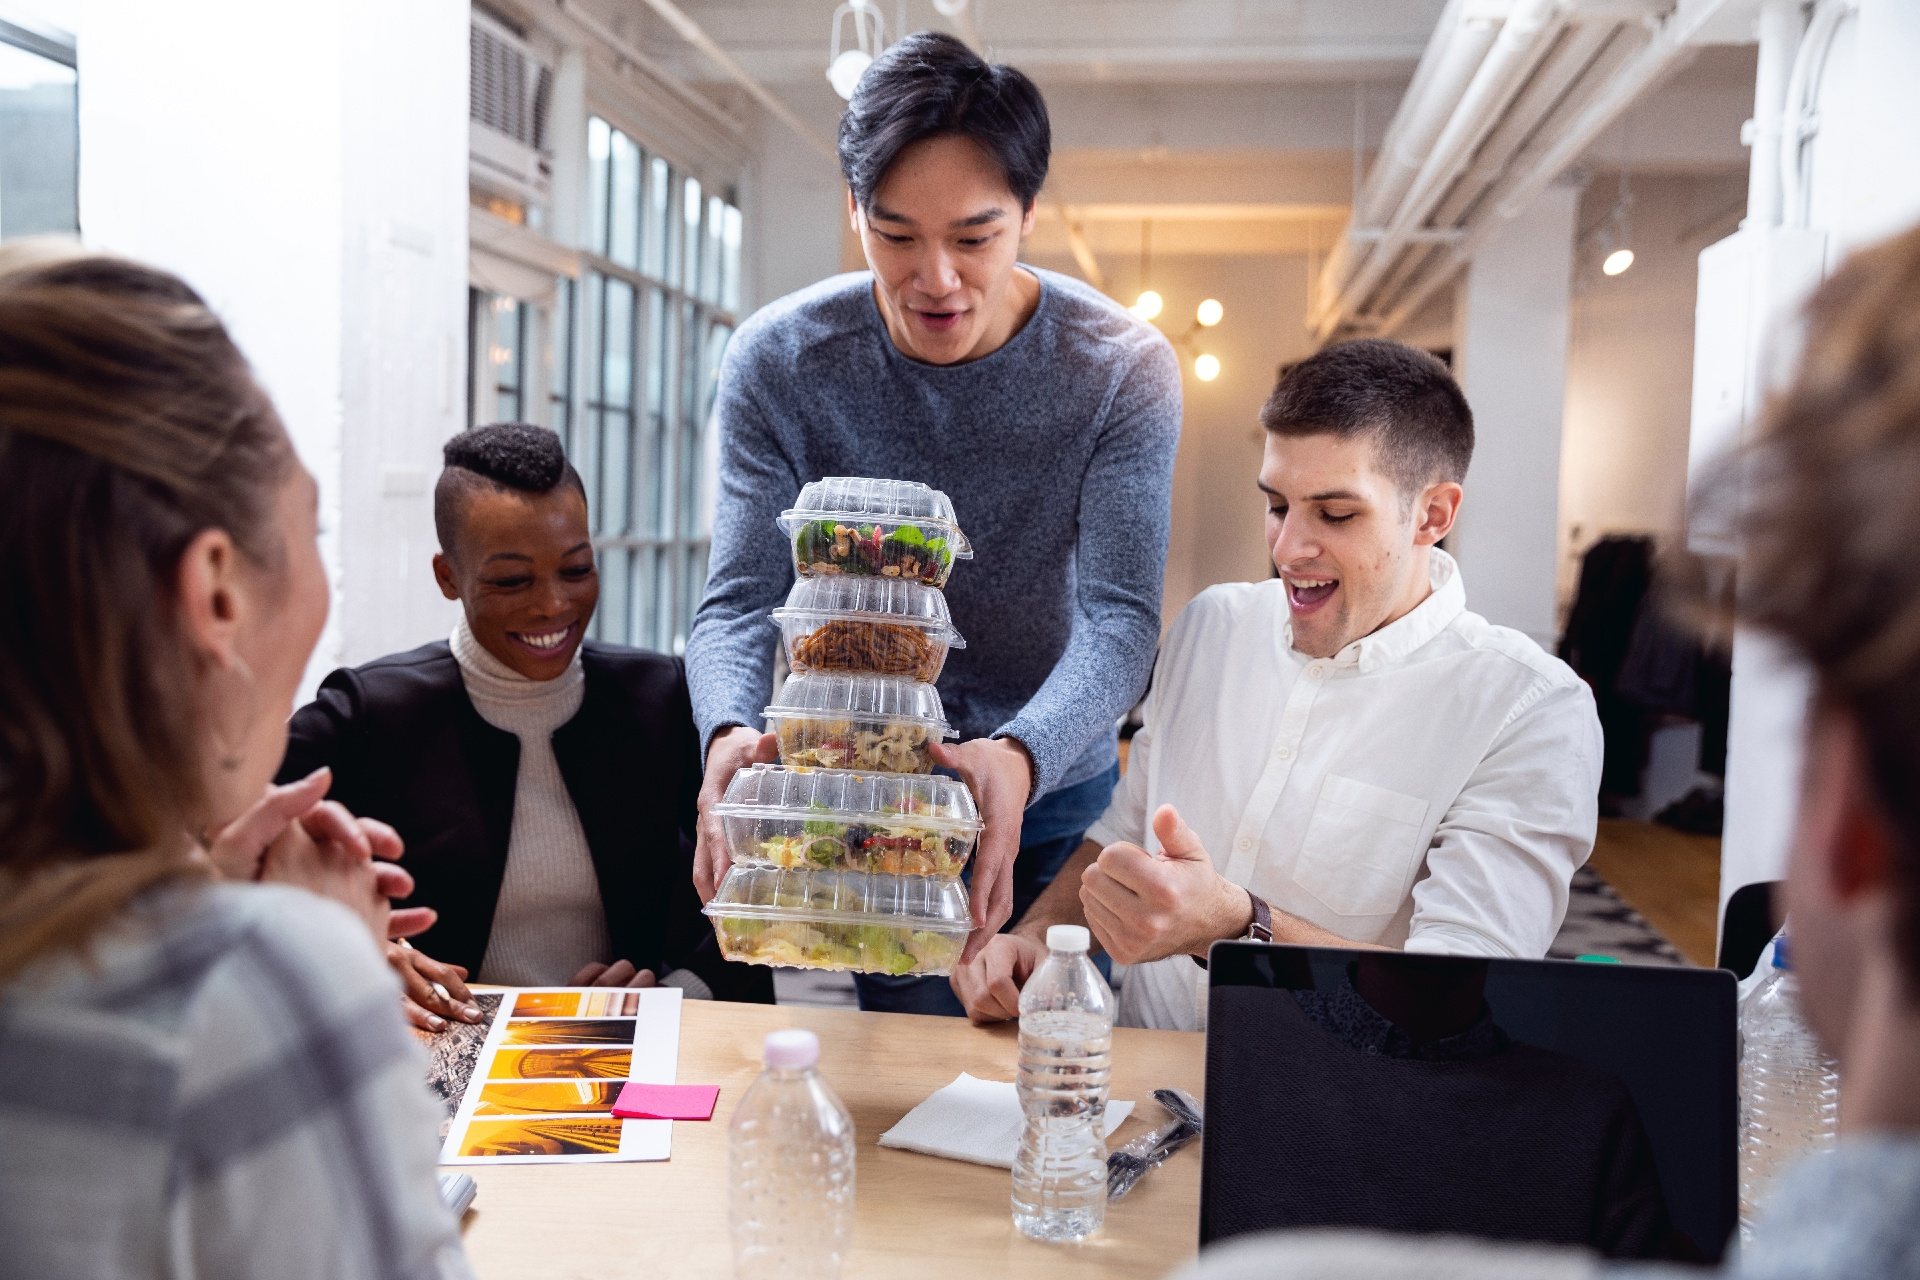 Coworkers at a group table being presented with lunch in clear containers